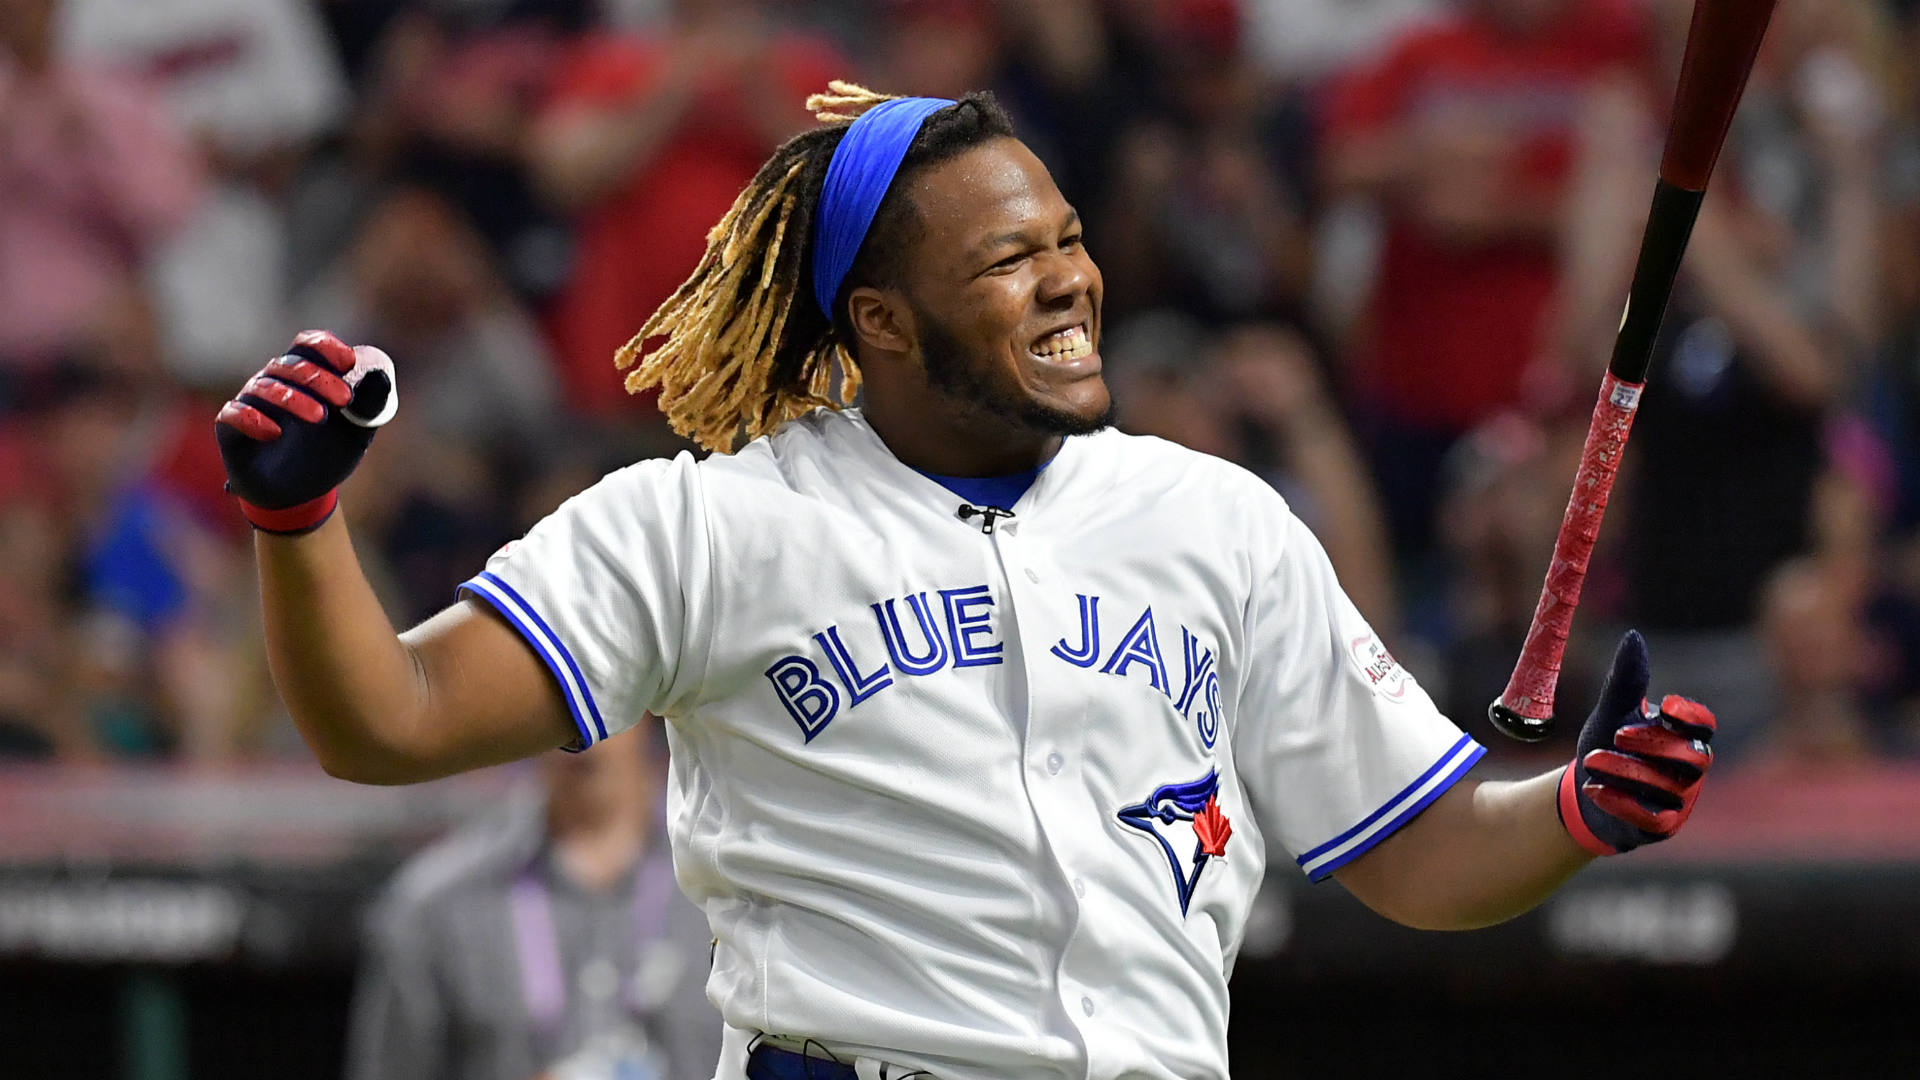 Blue Jays schedule 2020: Dates, times for Toronto's revised MLB regular season